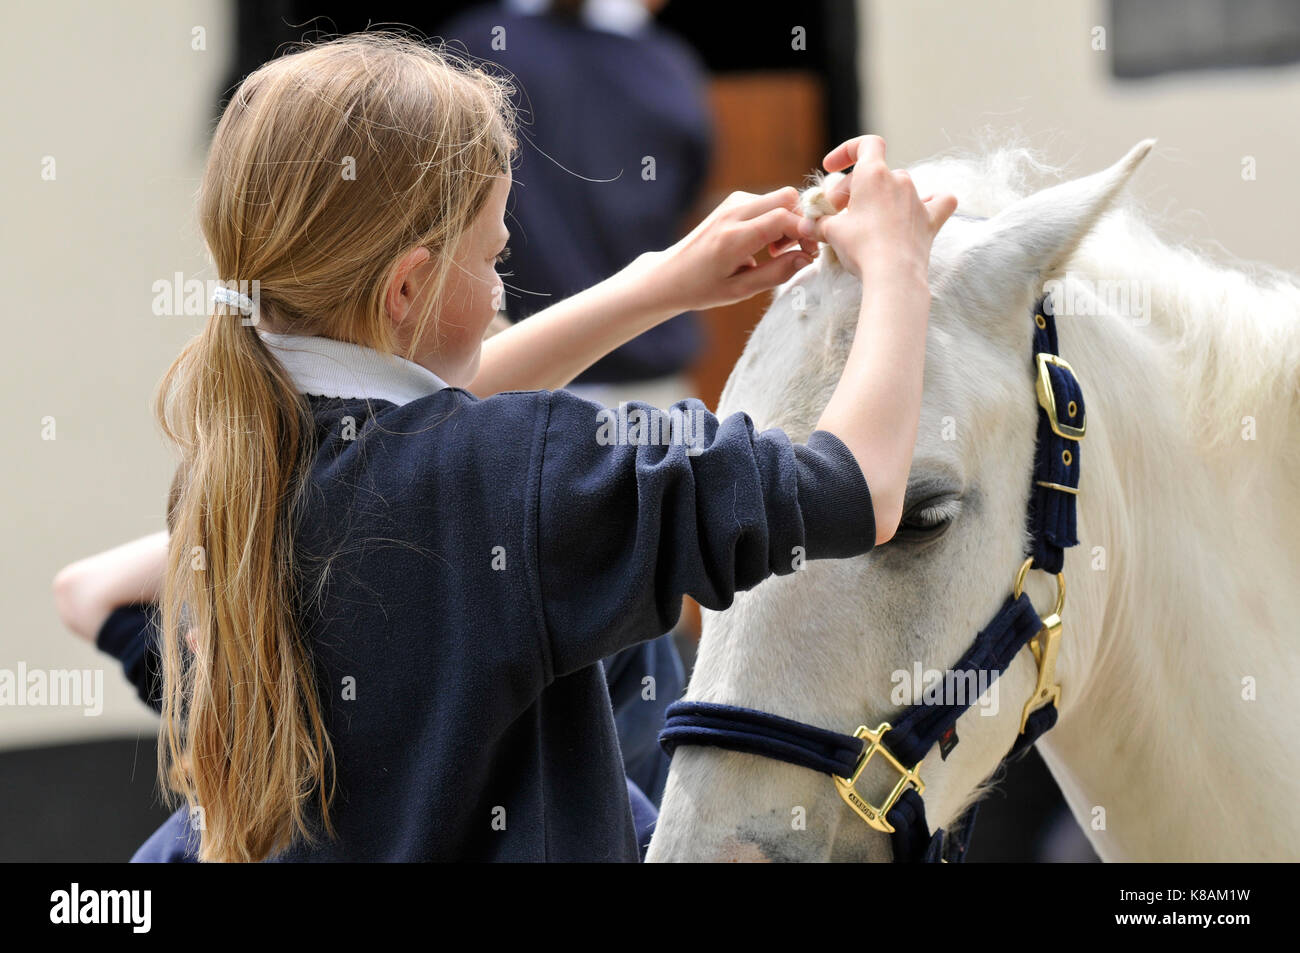 a young girl caring for a horse at a riding school. - Stock Image